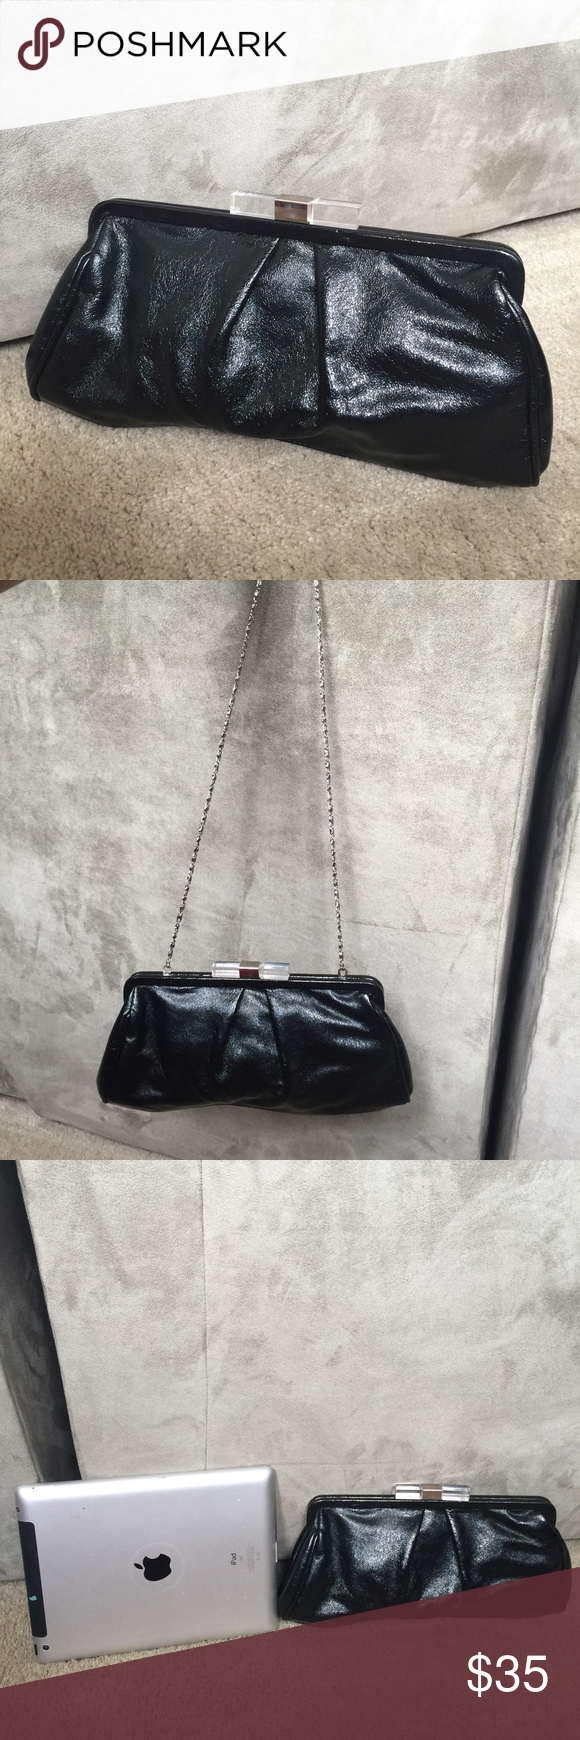 """Black Clutch cross body Lovely black clutch by Chinese Laundry. I believe it is faux leather and not real leather. Has a chain strap that allows it to be worn both as a clutch and as a cross-body or on the shoulder. Strap is approximately 18.5"""" long. Features a clear and silver clasp closure. Good used condition.  Good for casual or cocktail wear. Bags Crossbody Bags"""